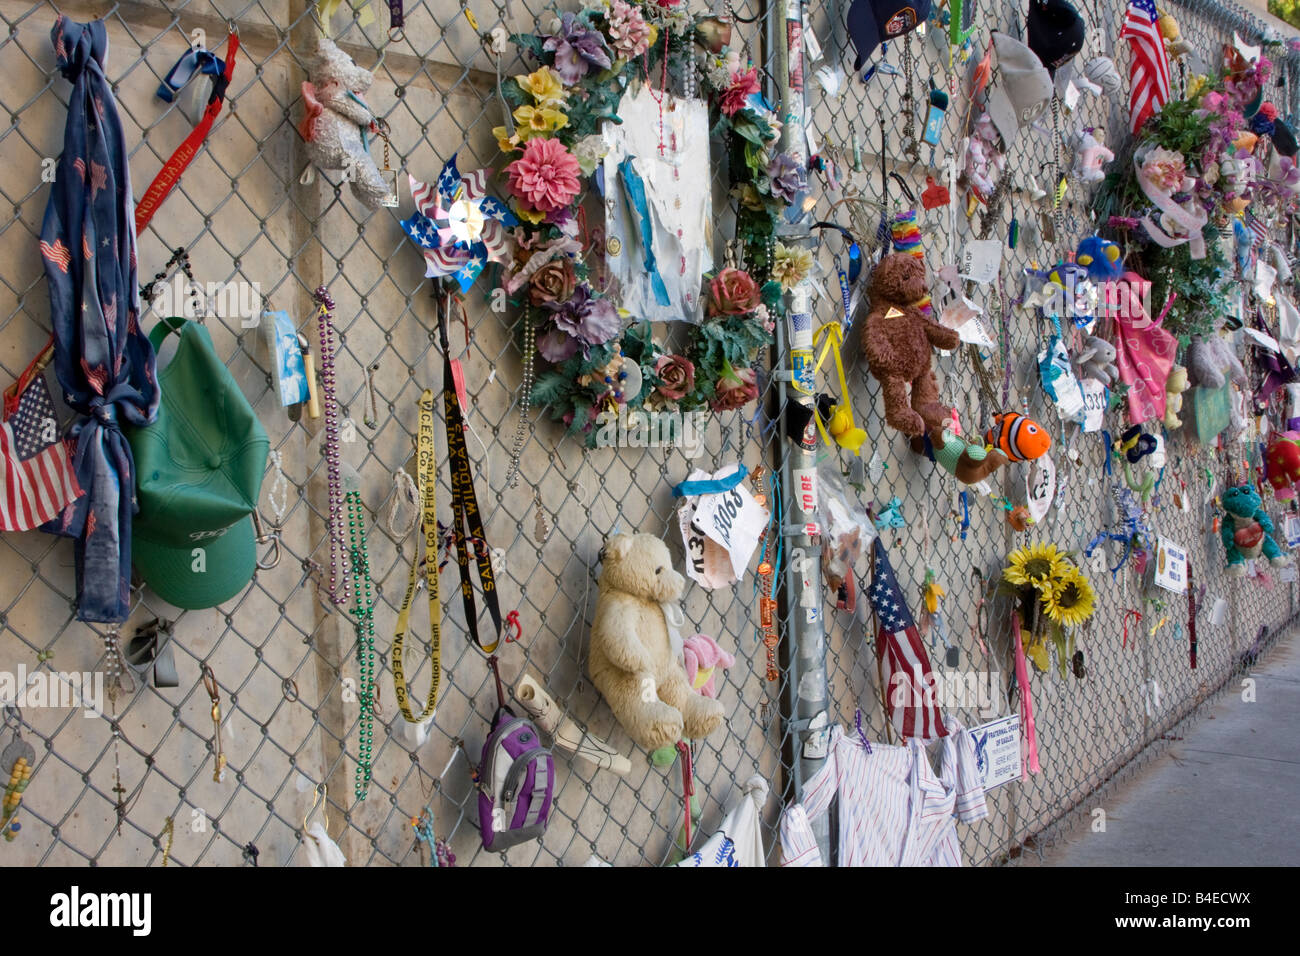 Oklahoma City, Oklahoma, USA. OKC National Memorial, Mementos on Fence. Toys, Dolls, Clothing of those lost in the - Stock Image